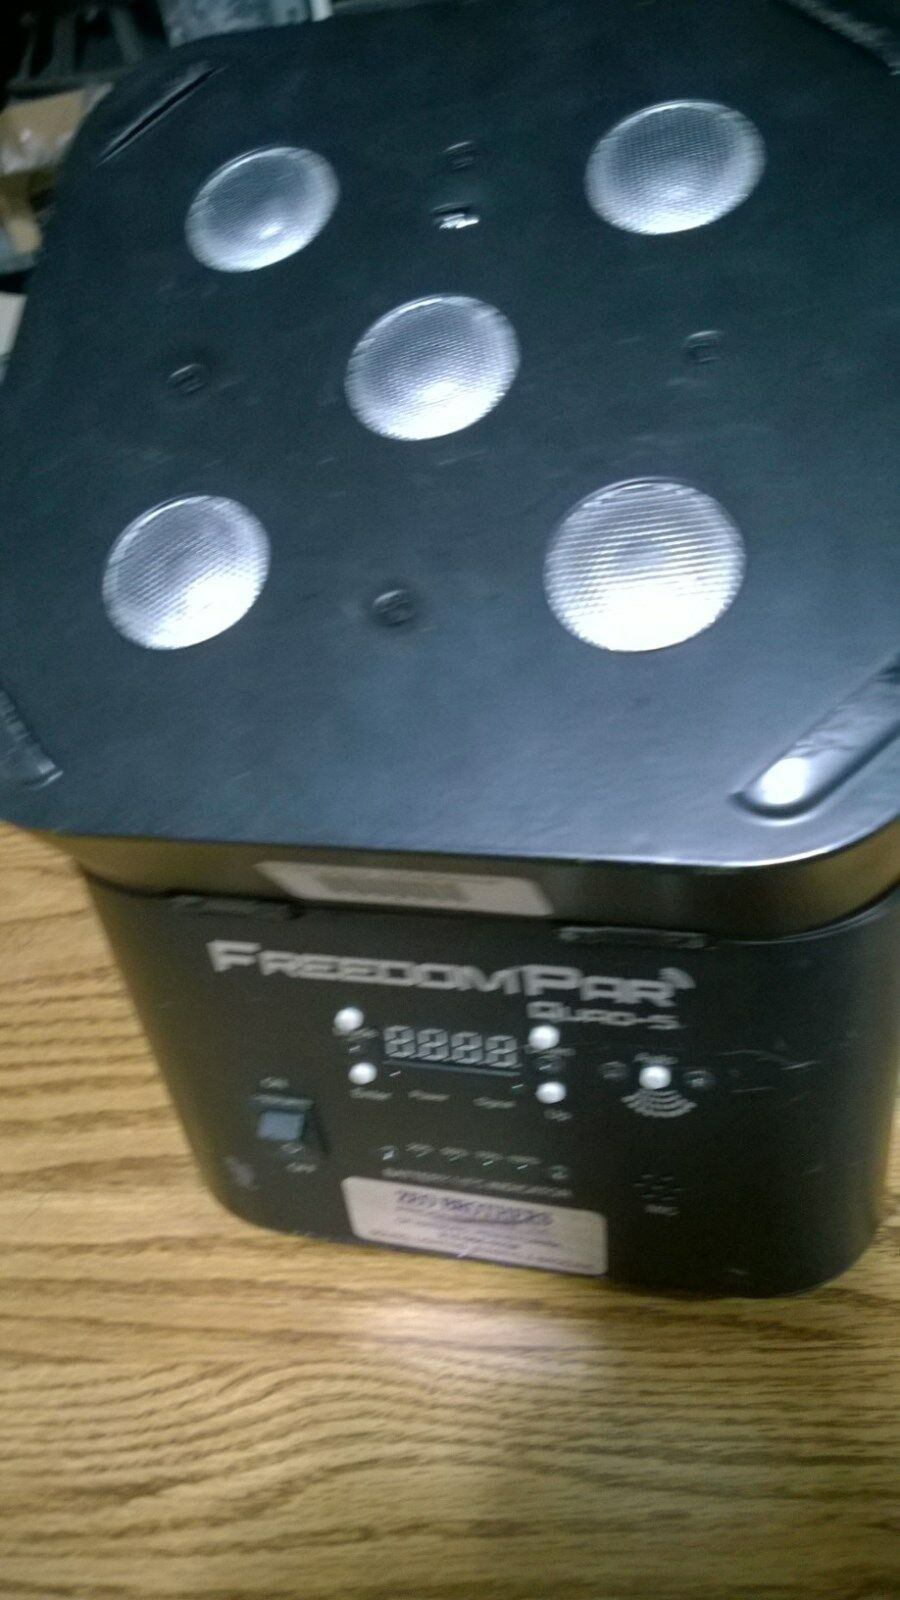 Chauvet Freedom Par Quad 5 Battery Powered LED Lighting Fixtures Used